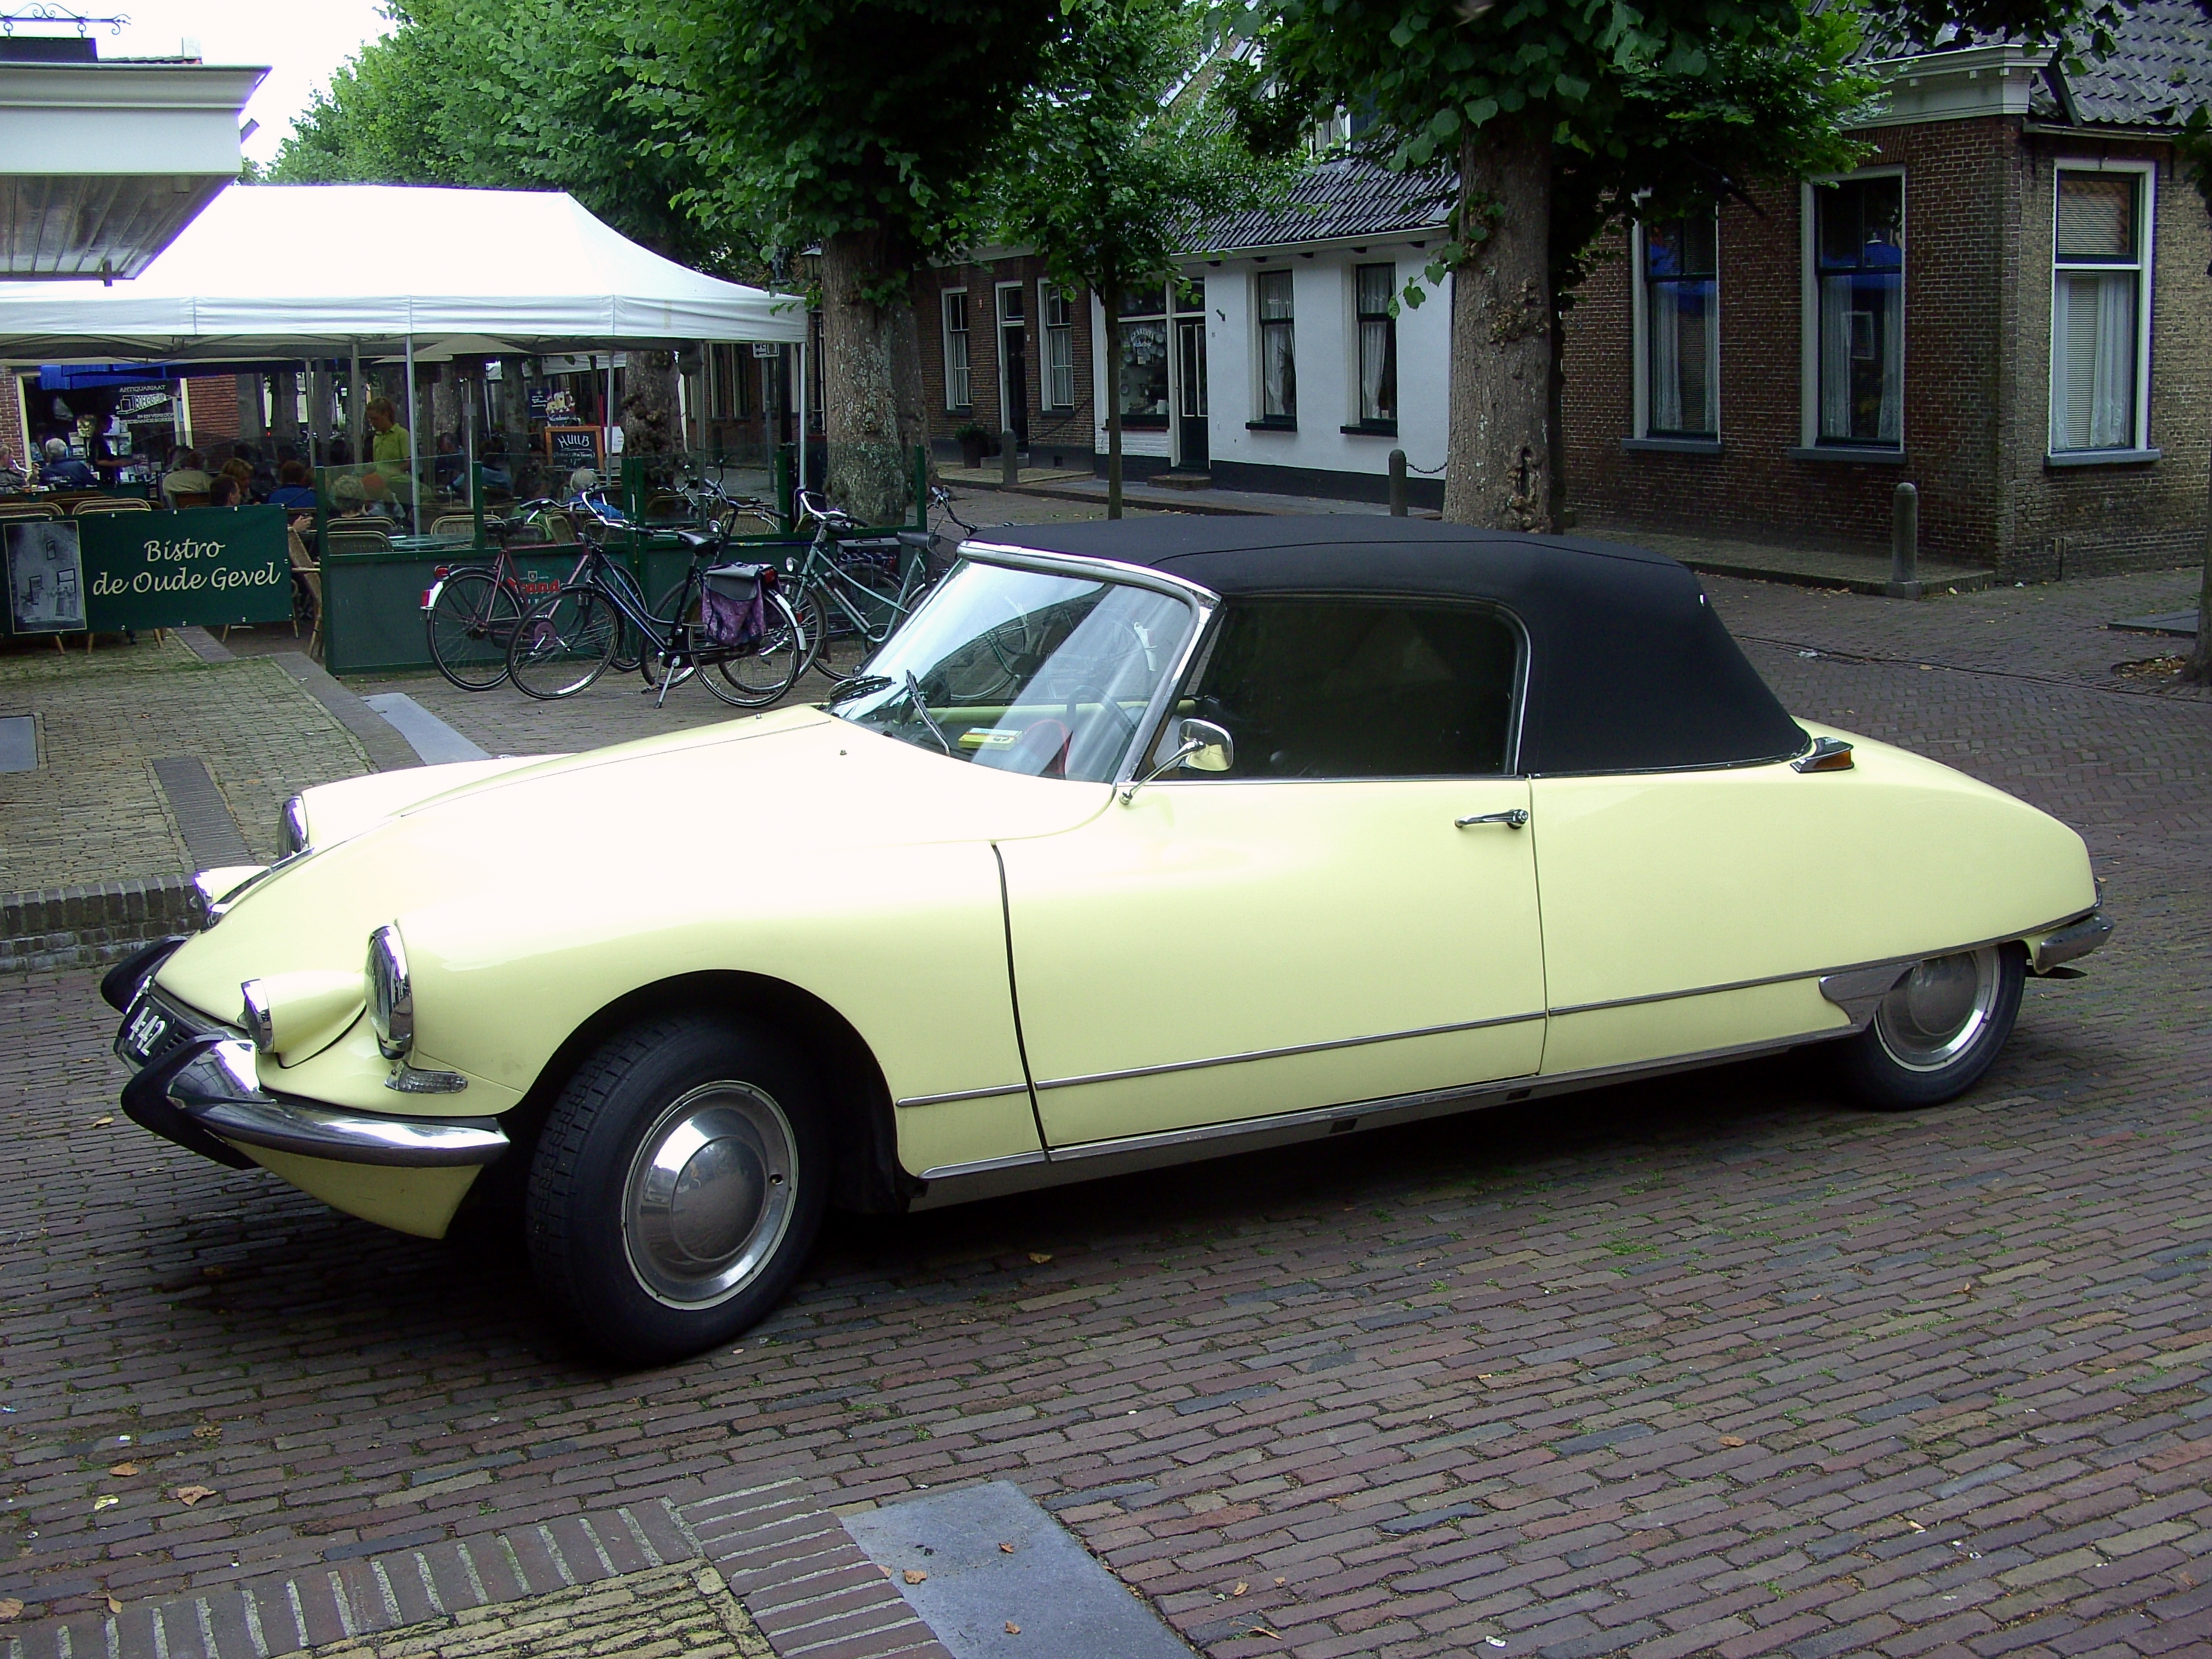 1963 citroen ds 19 cabrio images pictures and videos. Black Bedroom Furniture Sets. Home Design Ideas